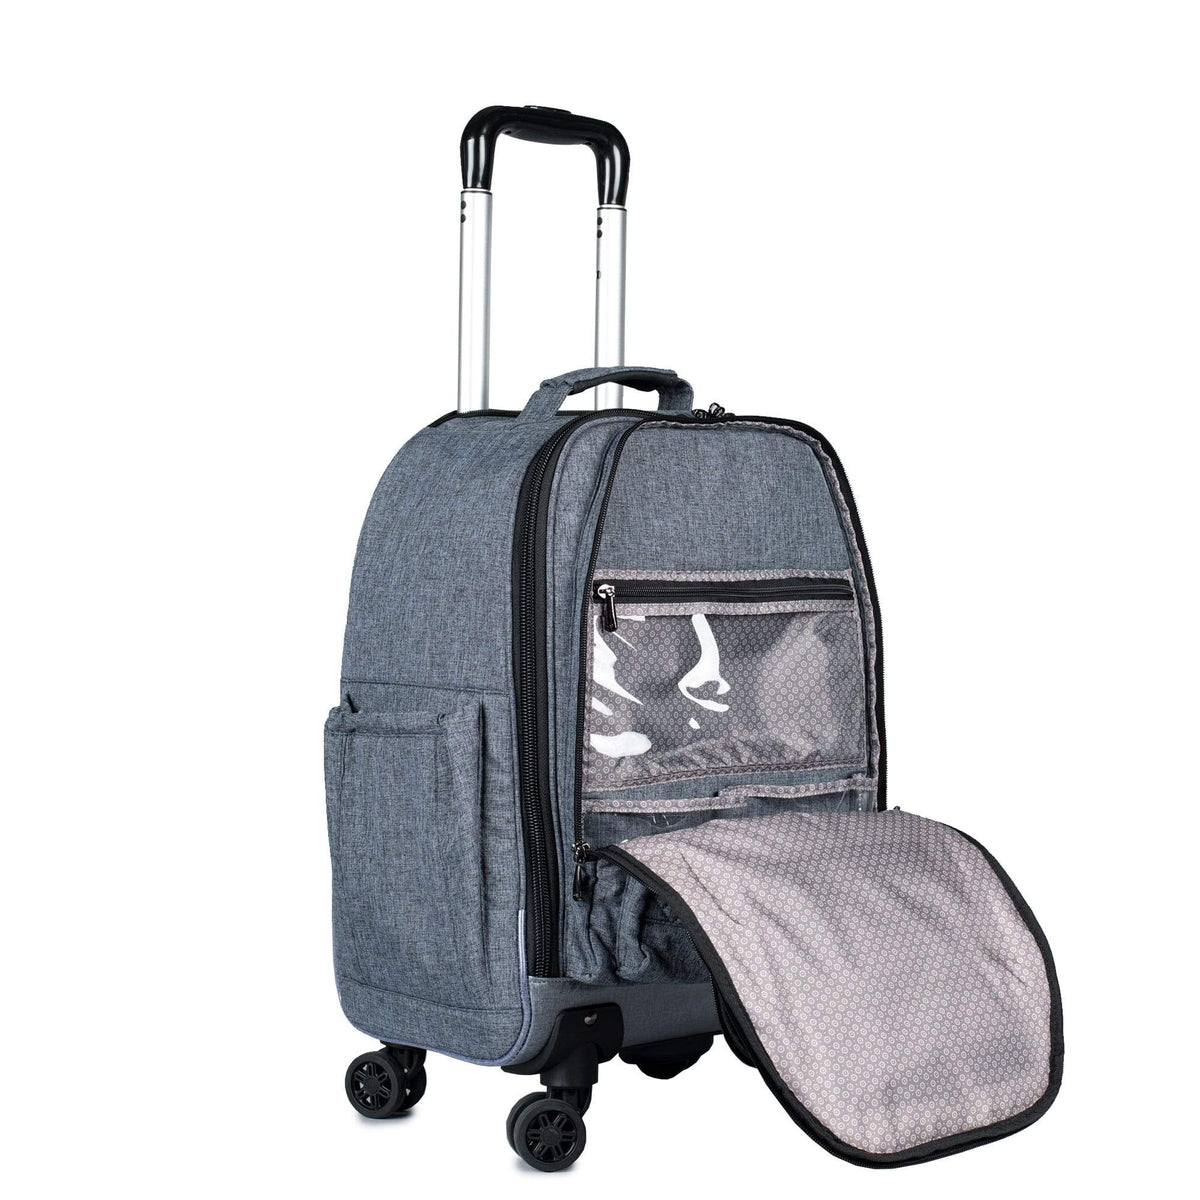 Propeller Wheelie 2 Luggage